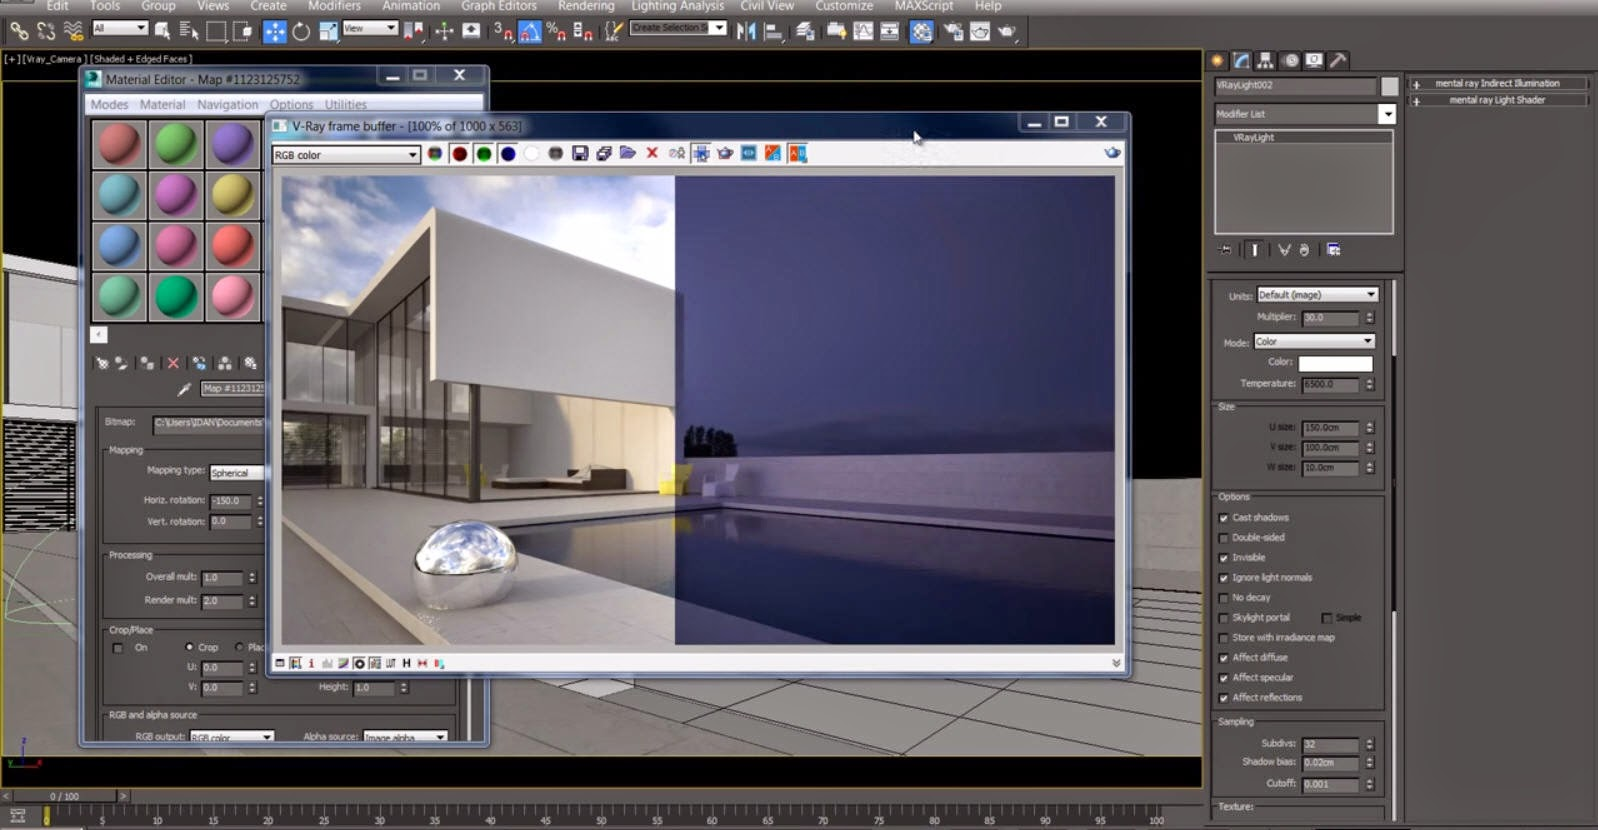 How to setup v ray hdri lighting for exterior render in - Exterior rendering in 3ds max with vray ...